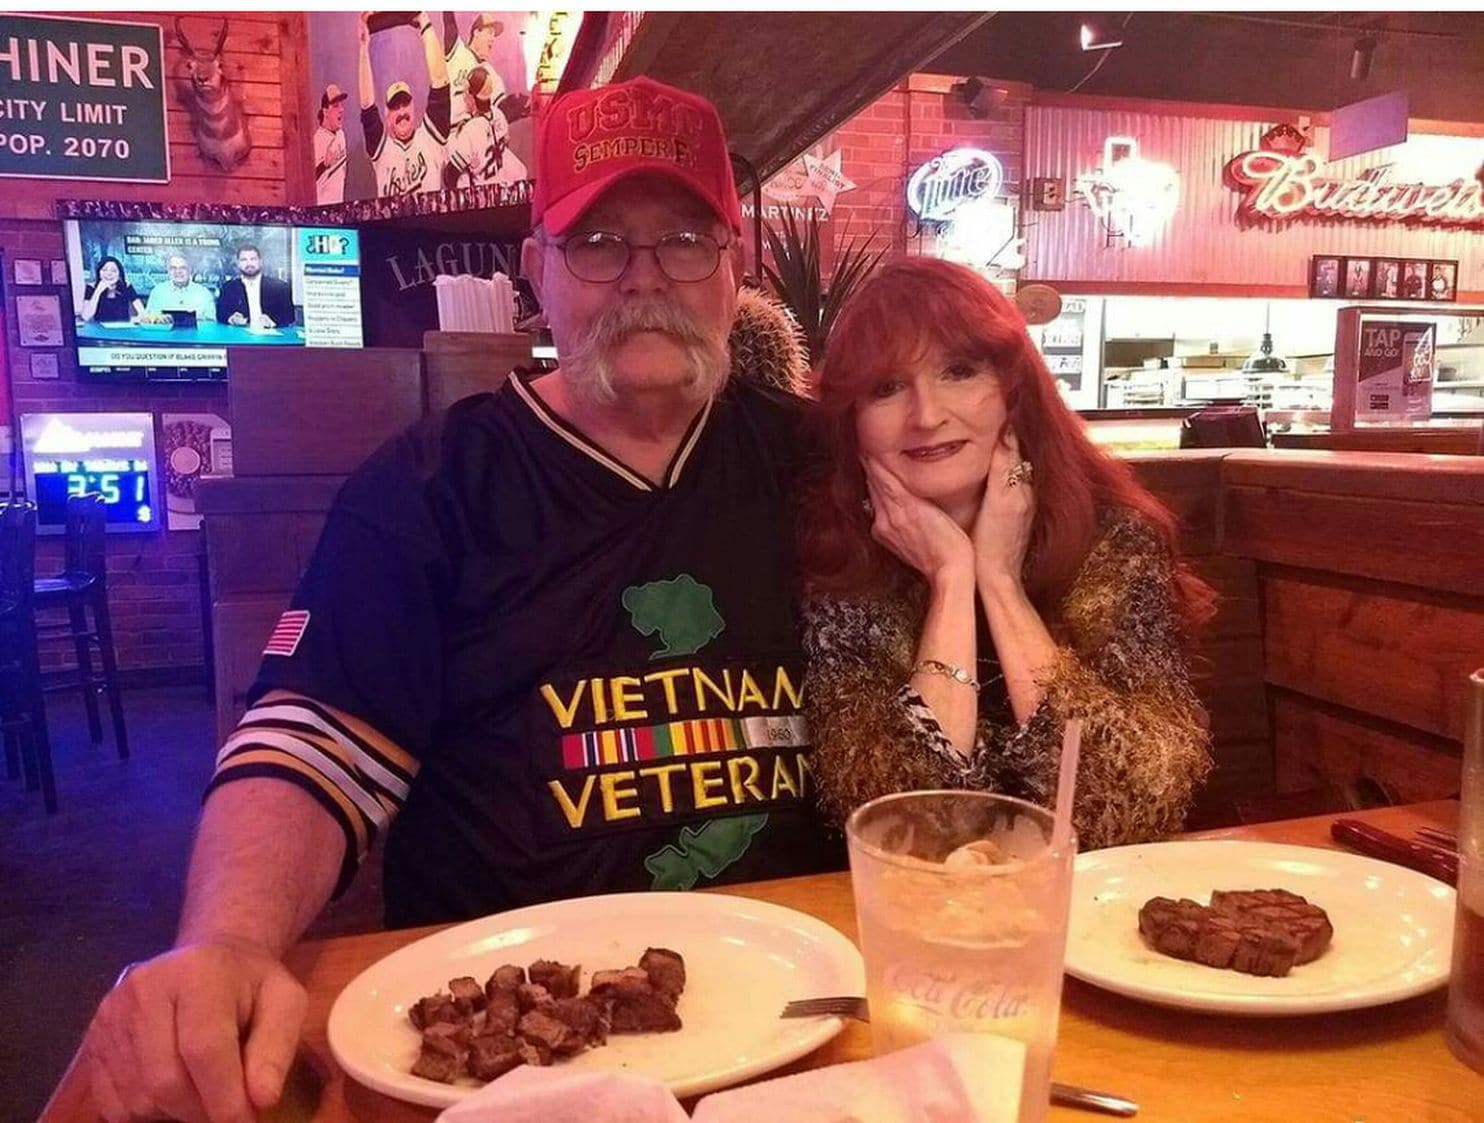 This couple enjoys Texas Roadhouse so much they trained themselves to eat almost nothing else, day or night - The Washington Post